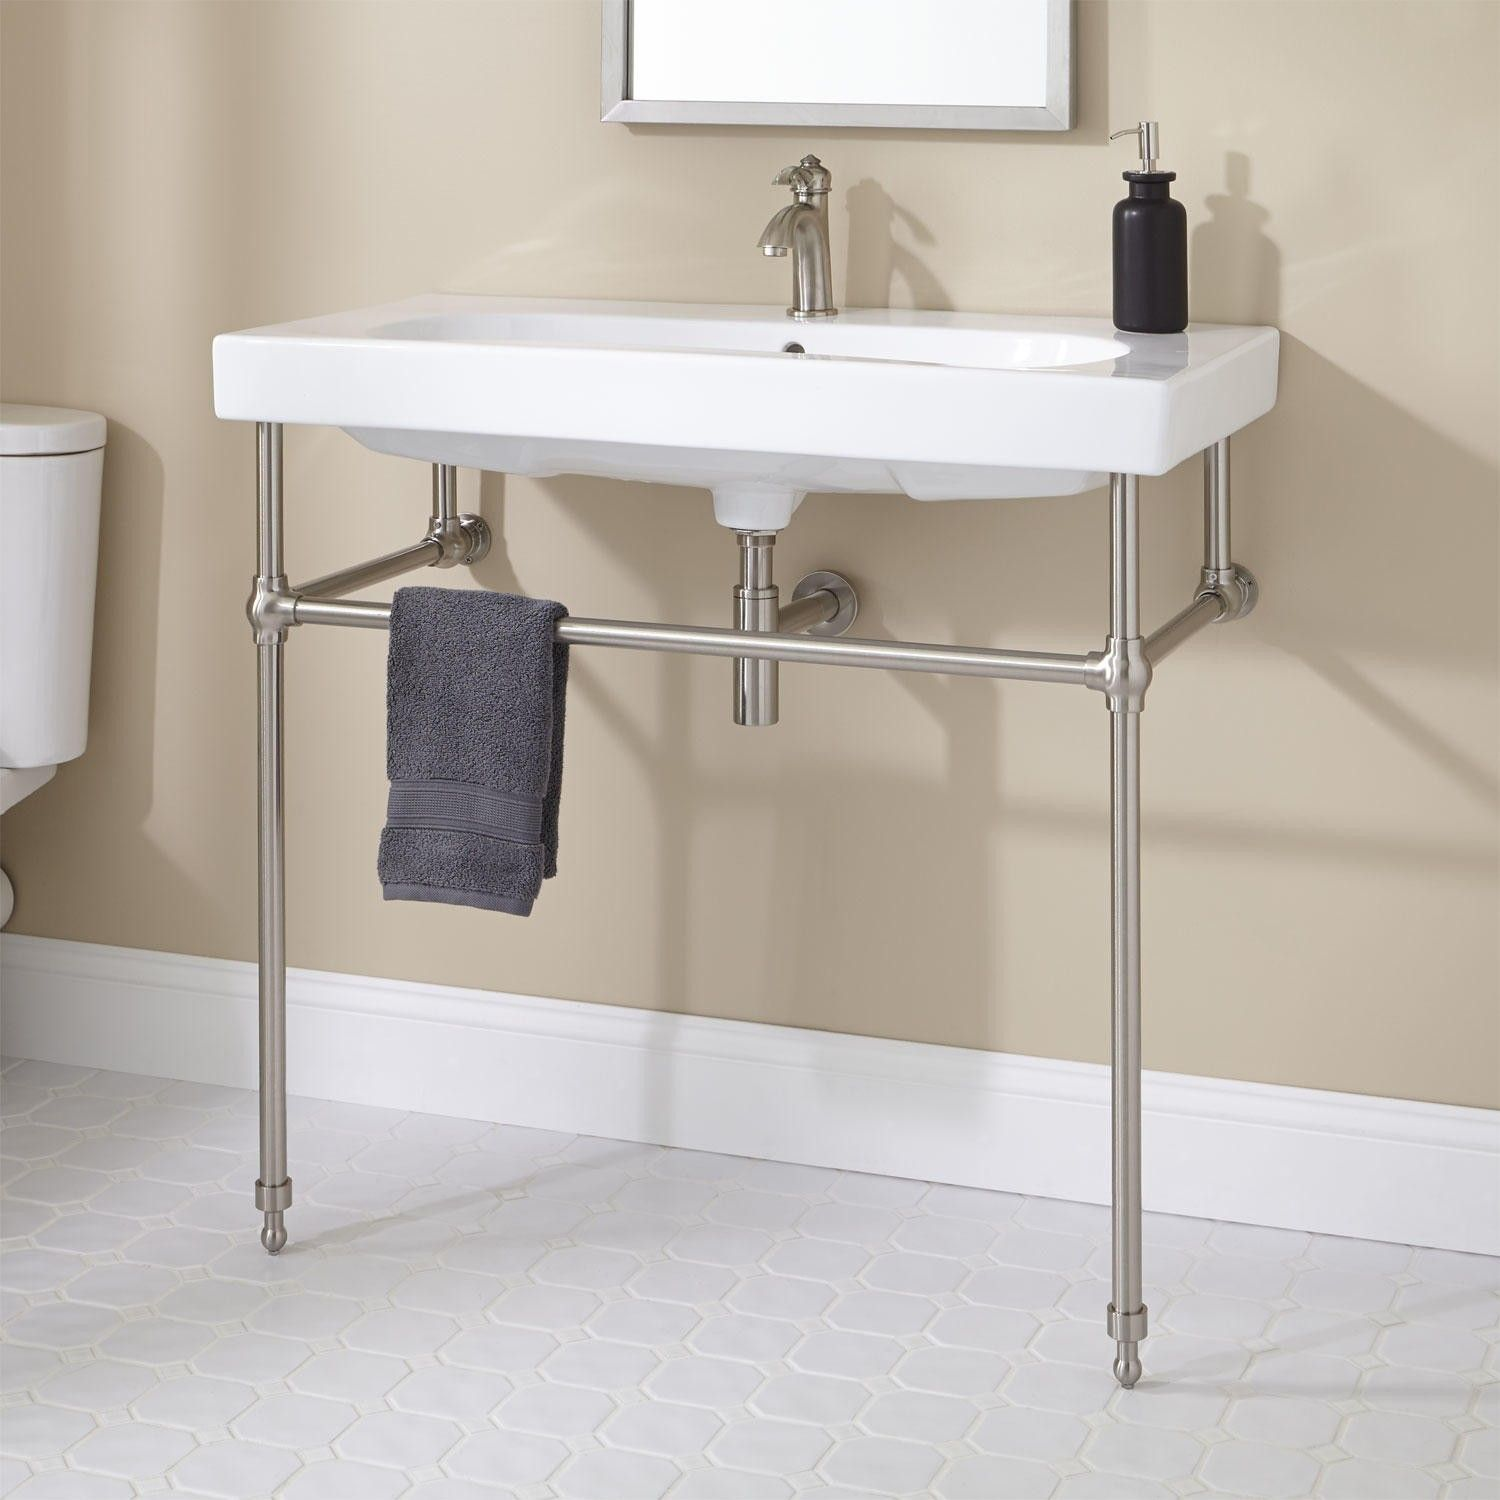 Console Sink For Unique Free Standing Sink Design Ideas Single